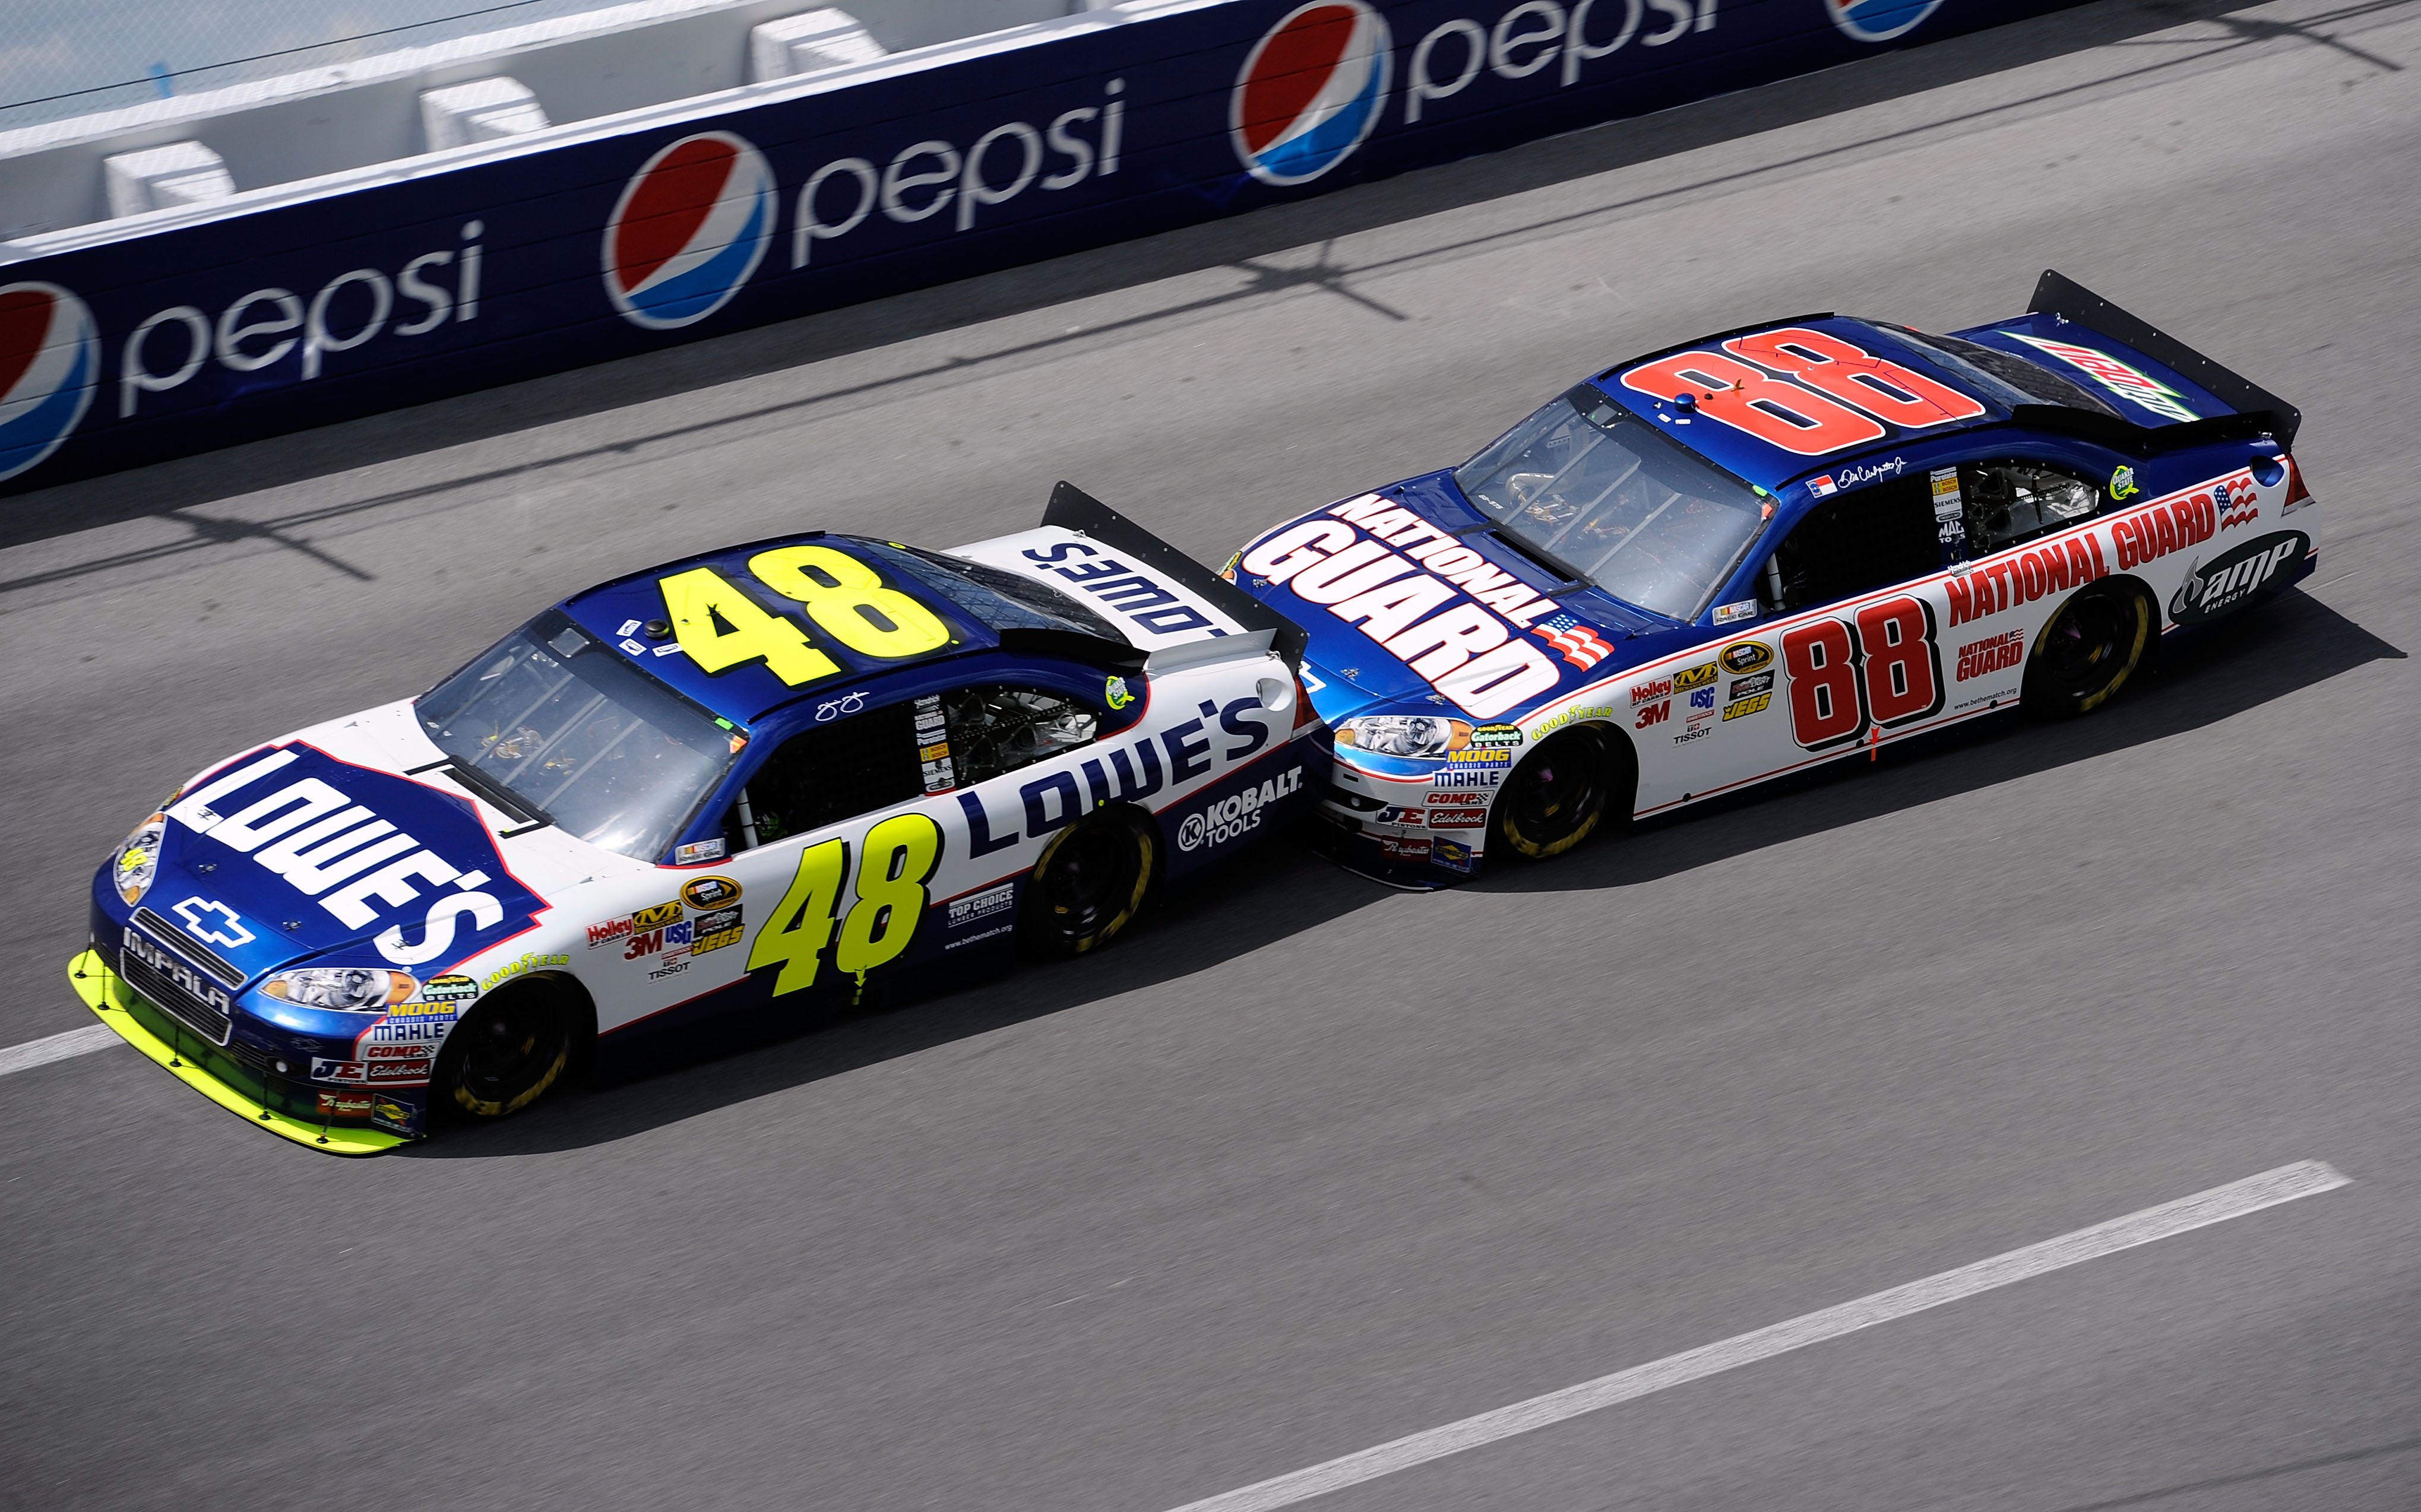 TALLADEGA, AL - APRIL 25:  Jimmie Johnson, driver of the #48 Lowe's Chevrolet, gets bump drafted by Dale Earnhardt Jr., driver of the #88 National Guard/AMP Energy Chevrolet, during the NASCAR Sprint Cup Series Aaron's 499 at Talladega Superspeedway on Ap